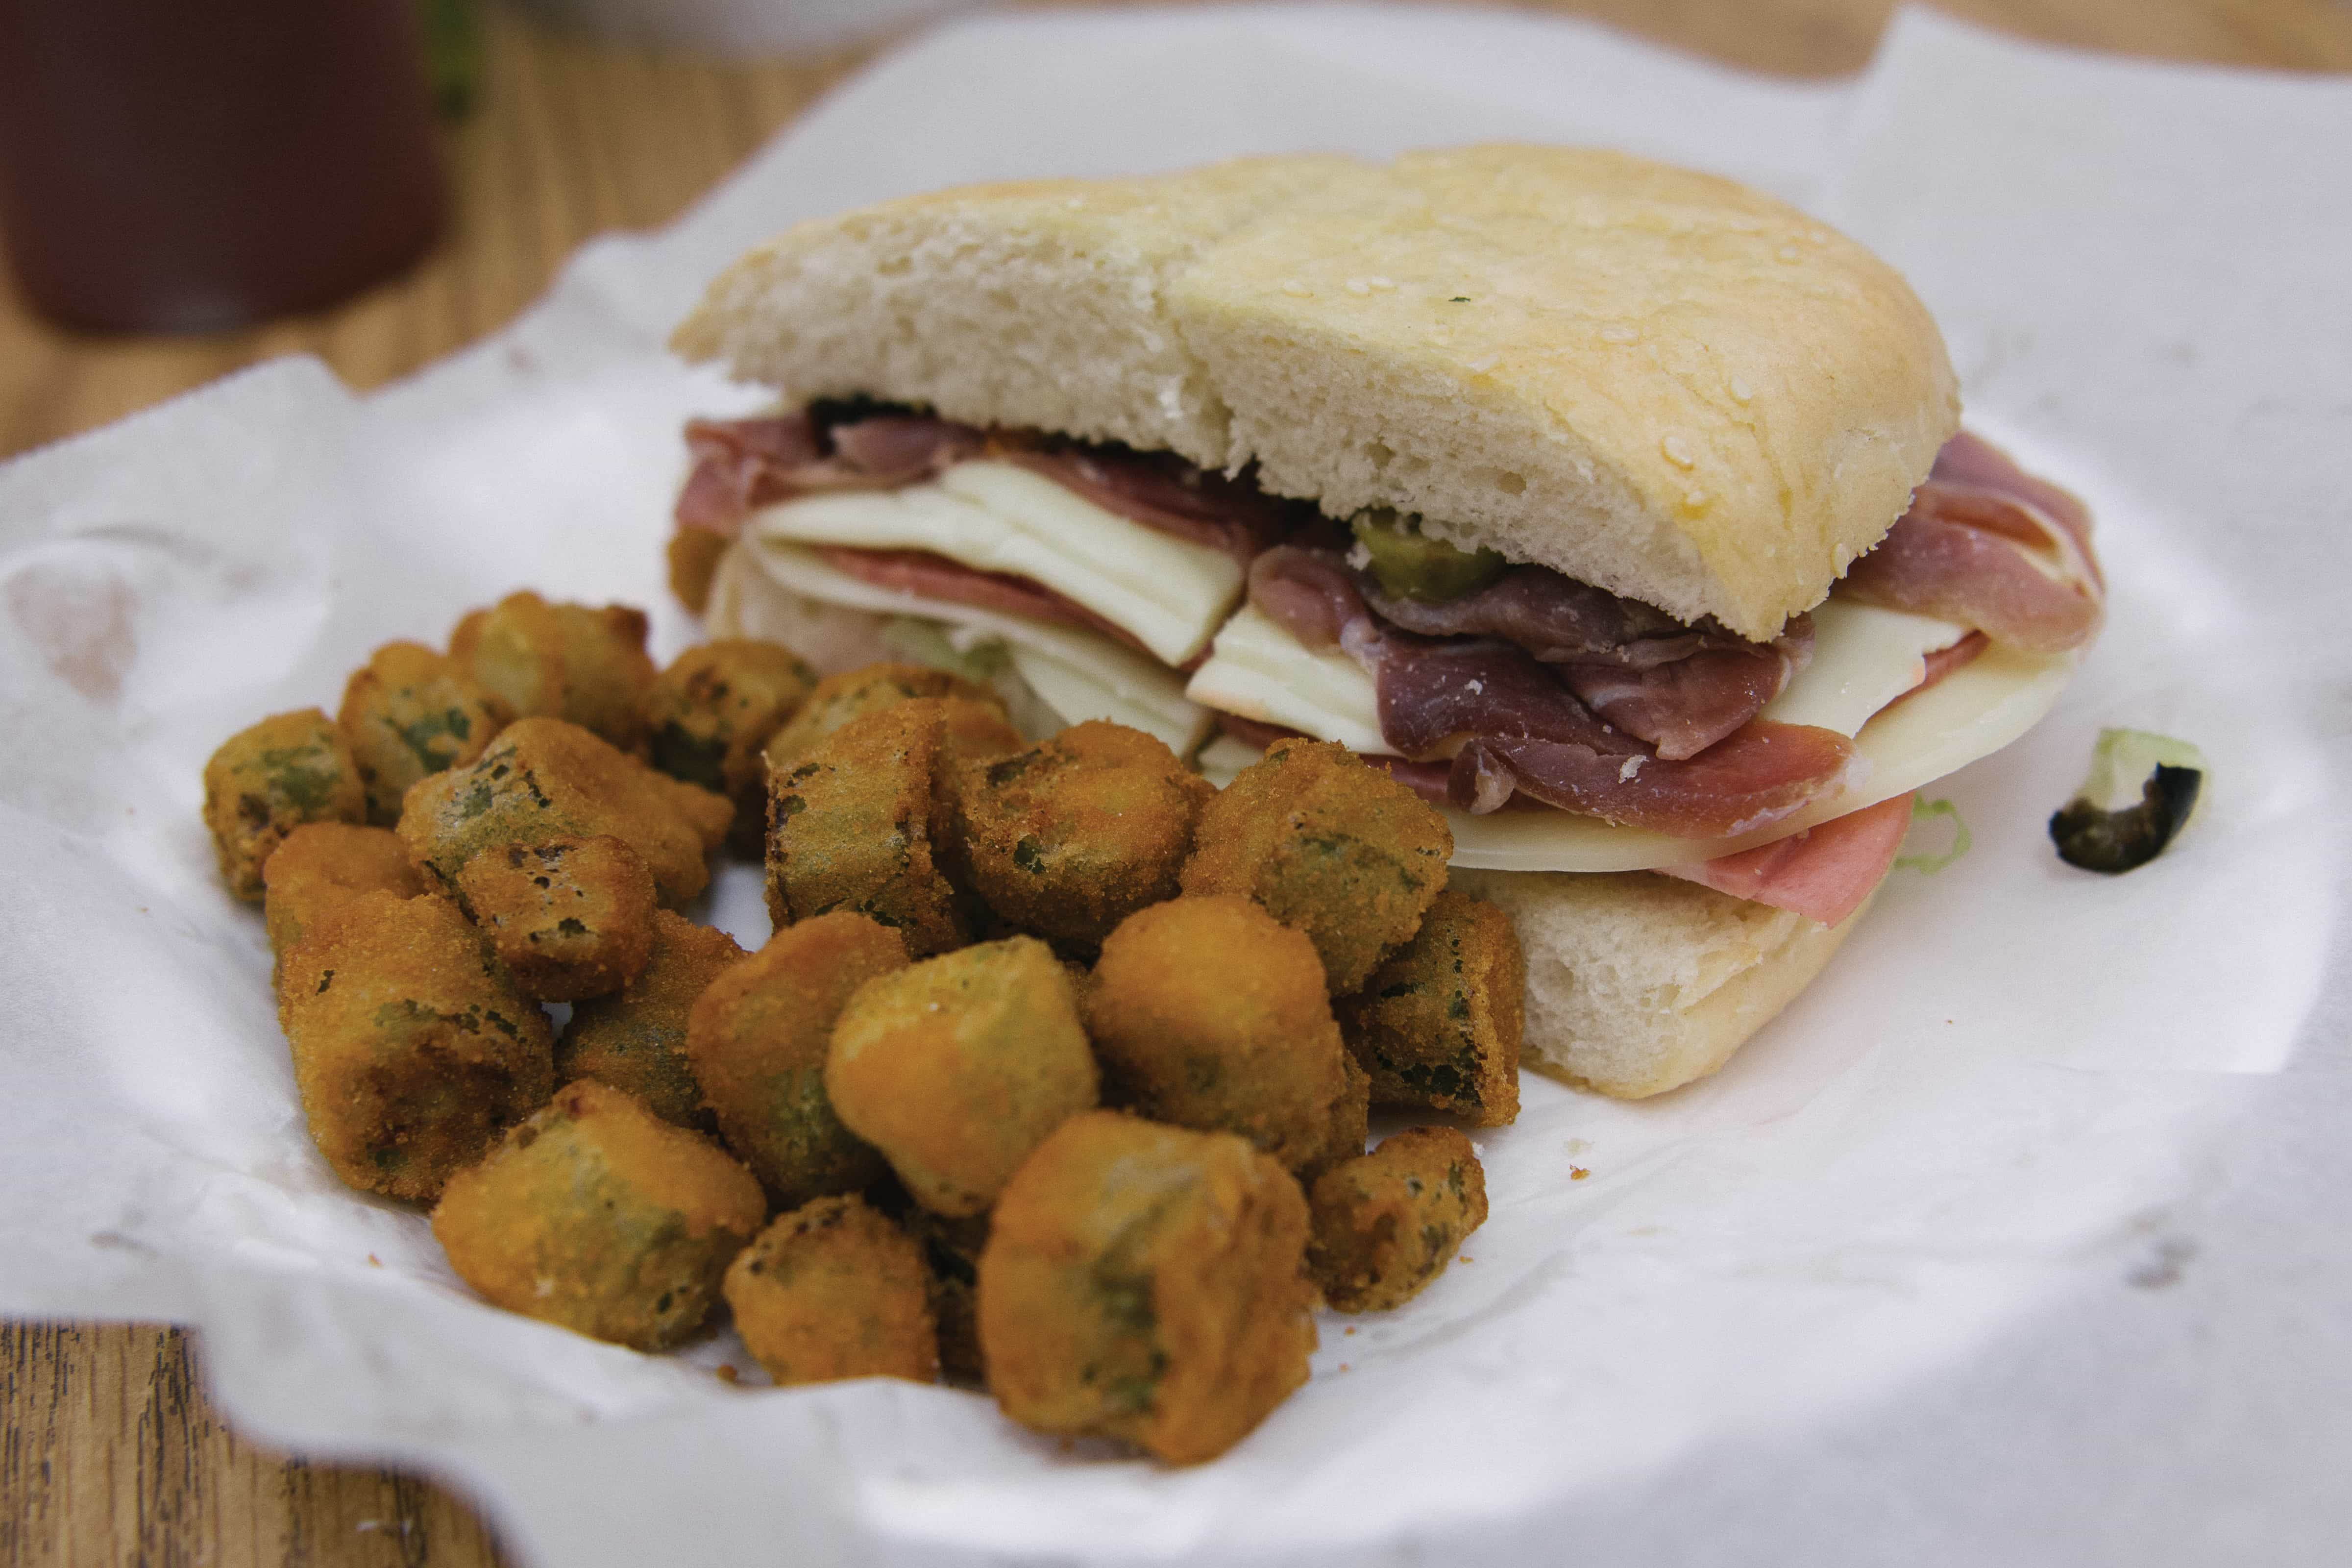 Fratesi's muffaletta is a popular item on their menu.